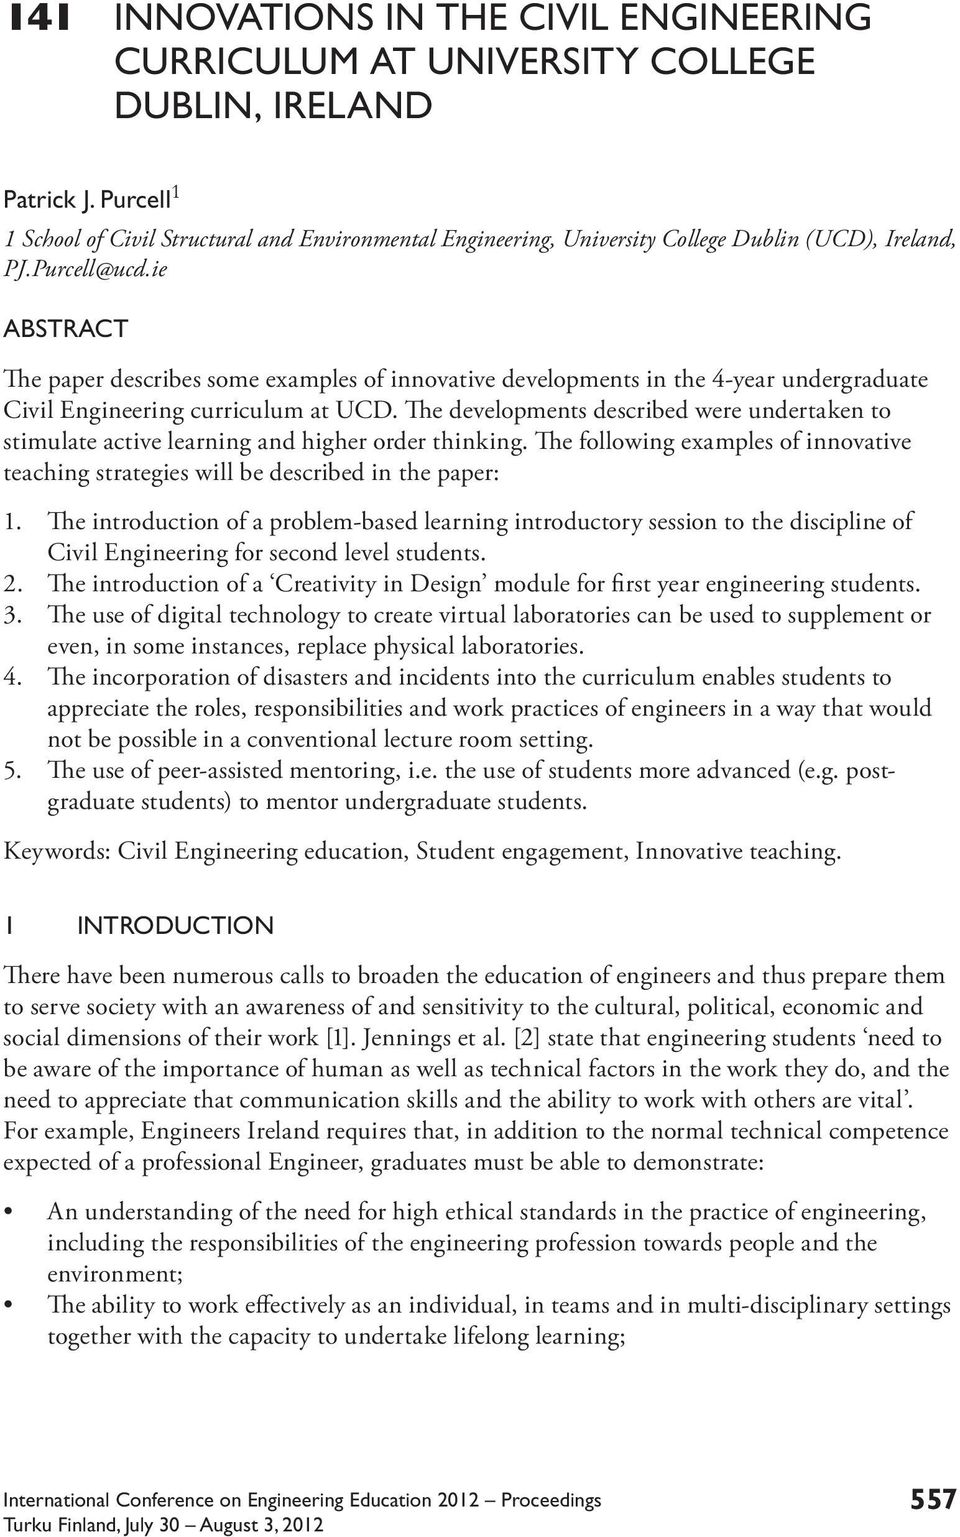 ie ABSTRACT The paper describes some examples of innovative developments in the 4-year undergraduate Civil Engineering curriculum at UCD.